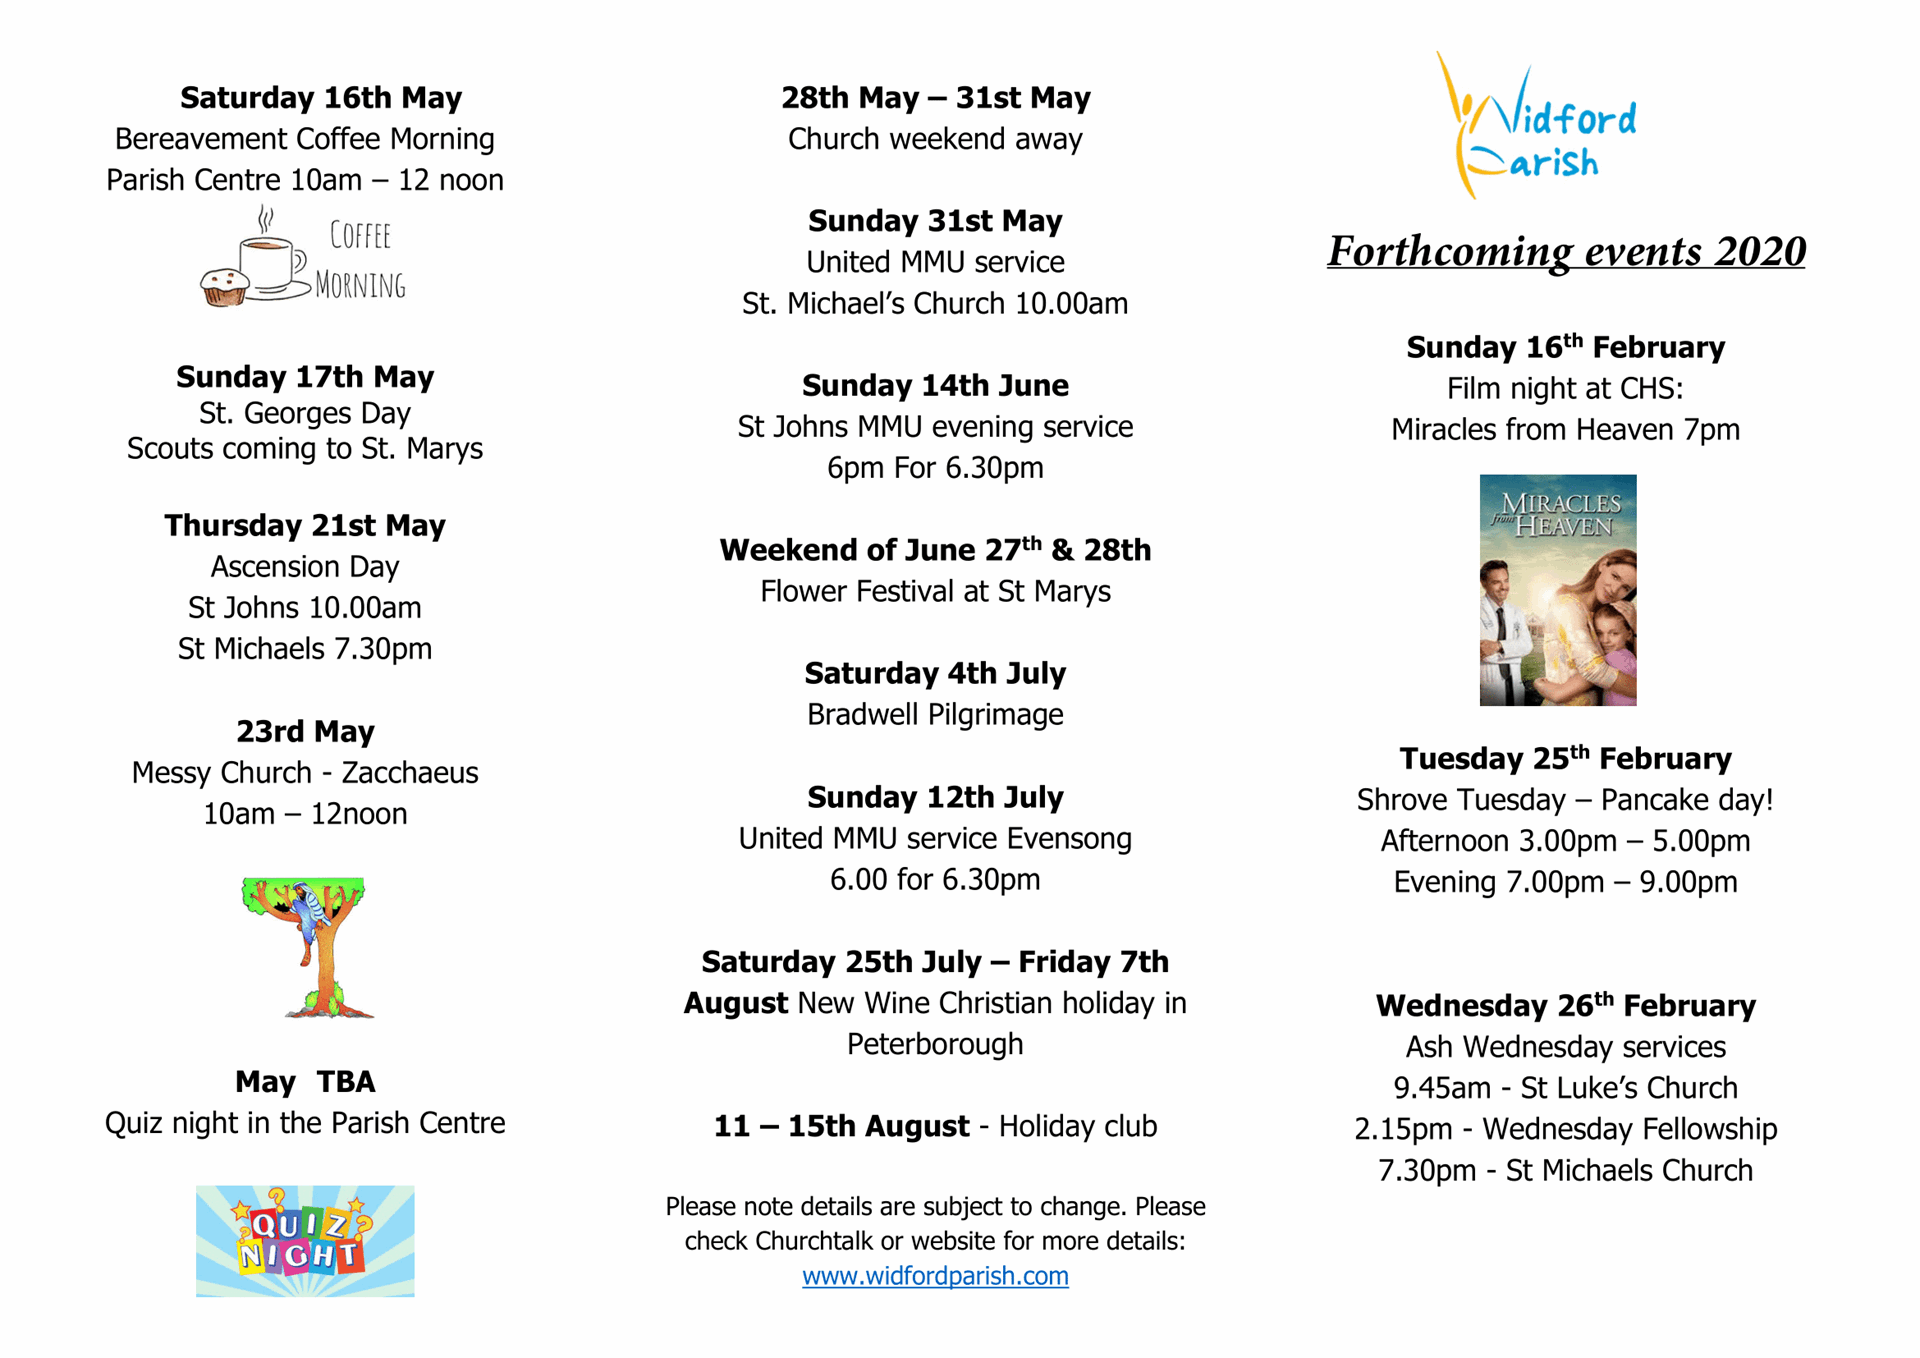 Forthcoming events 2020.3 11